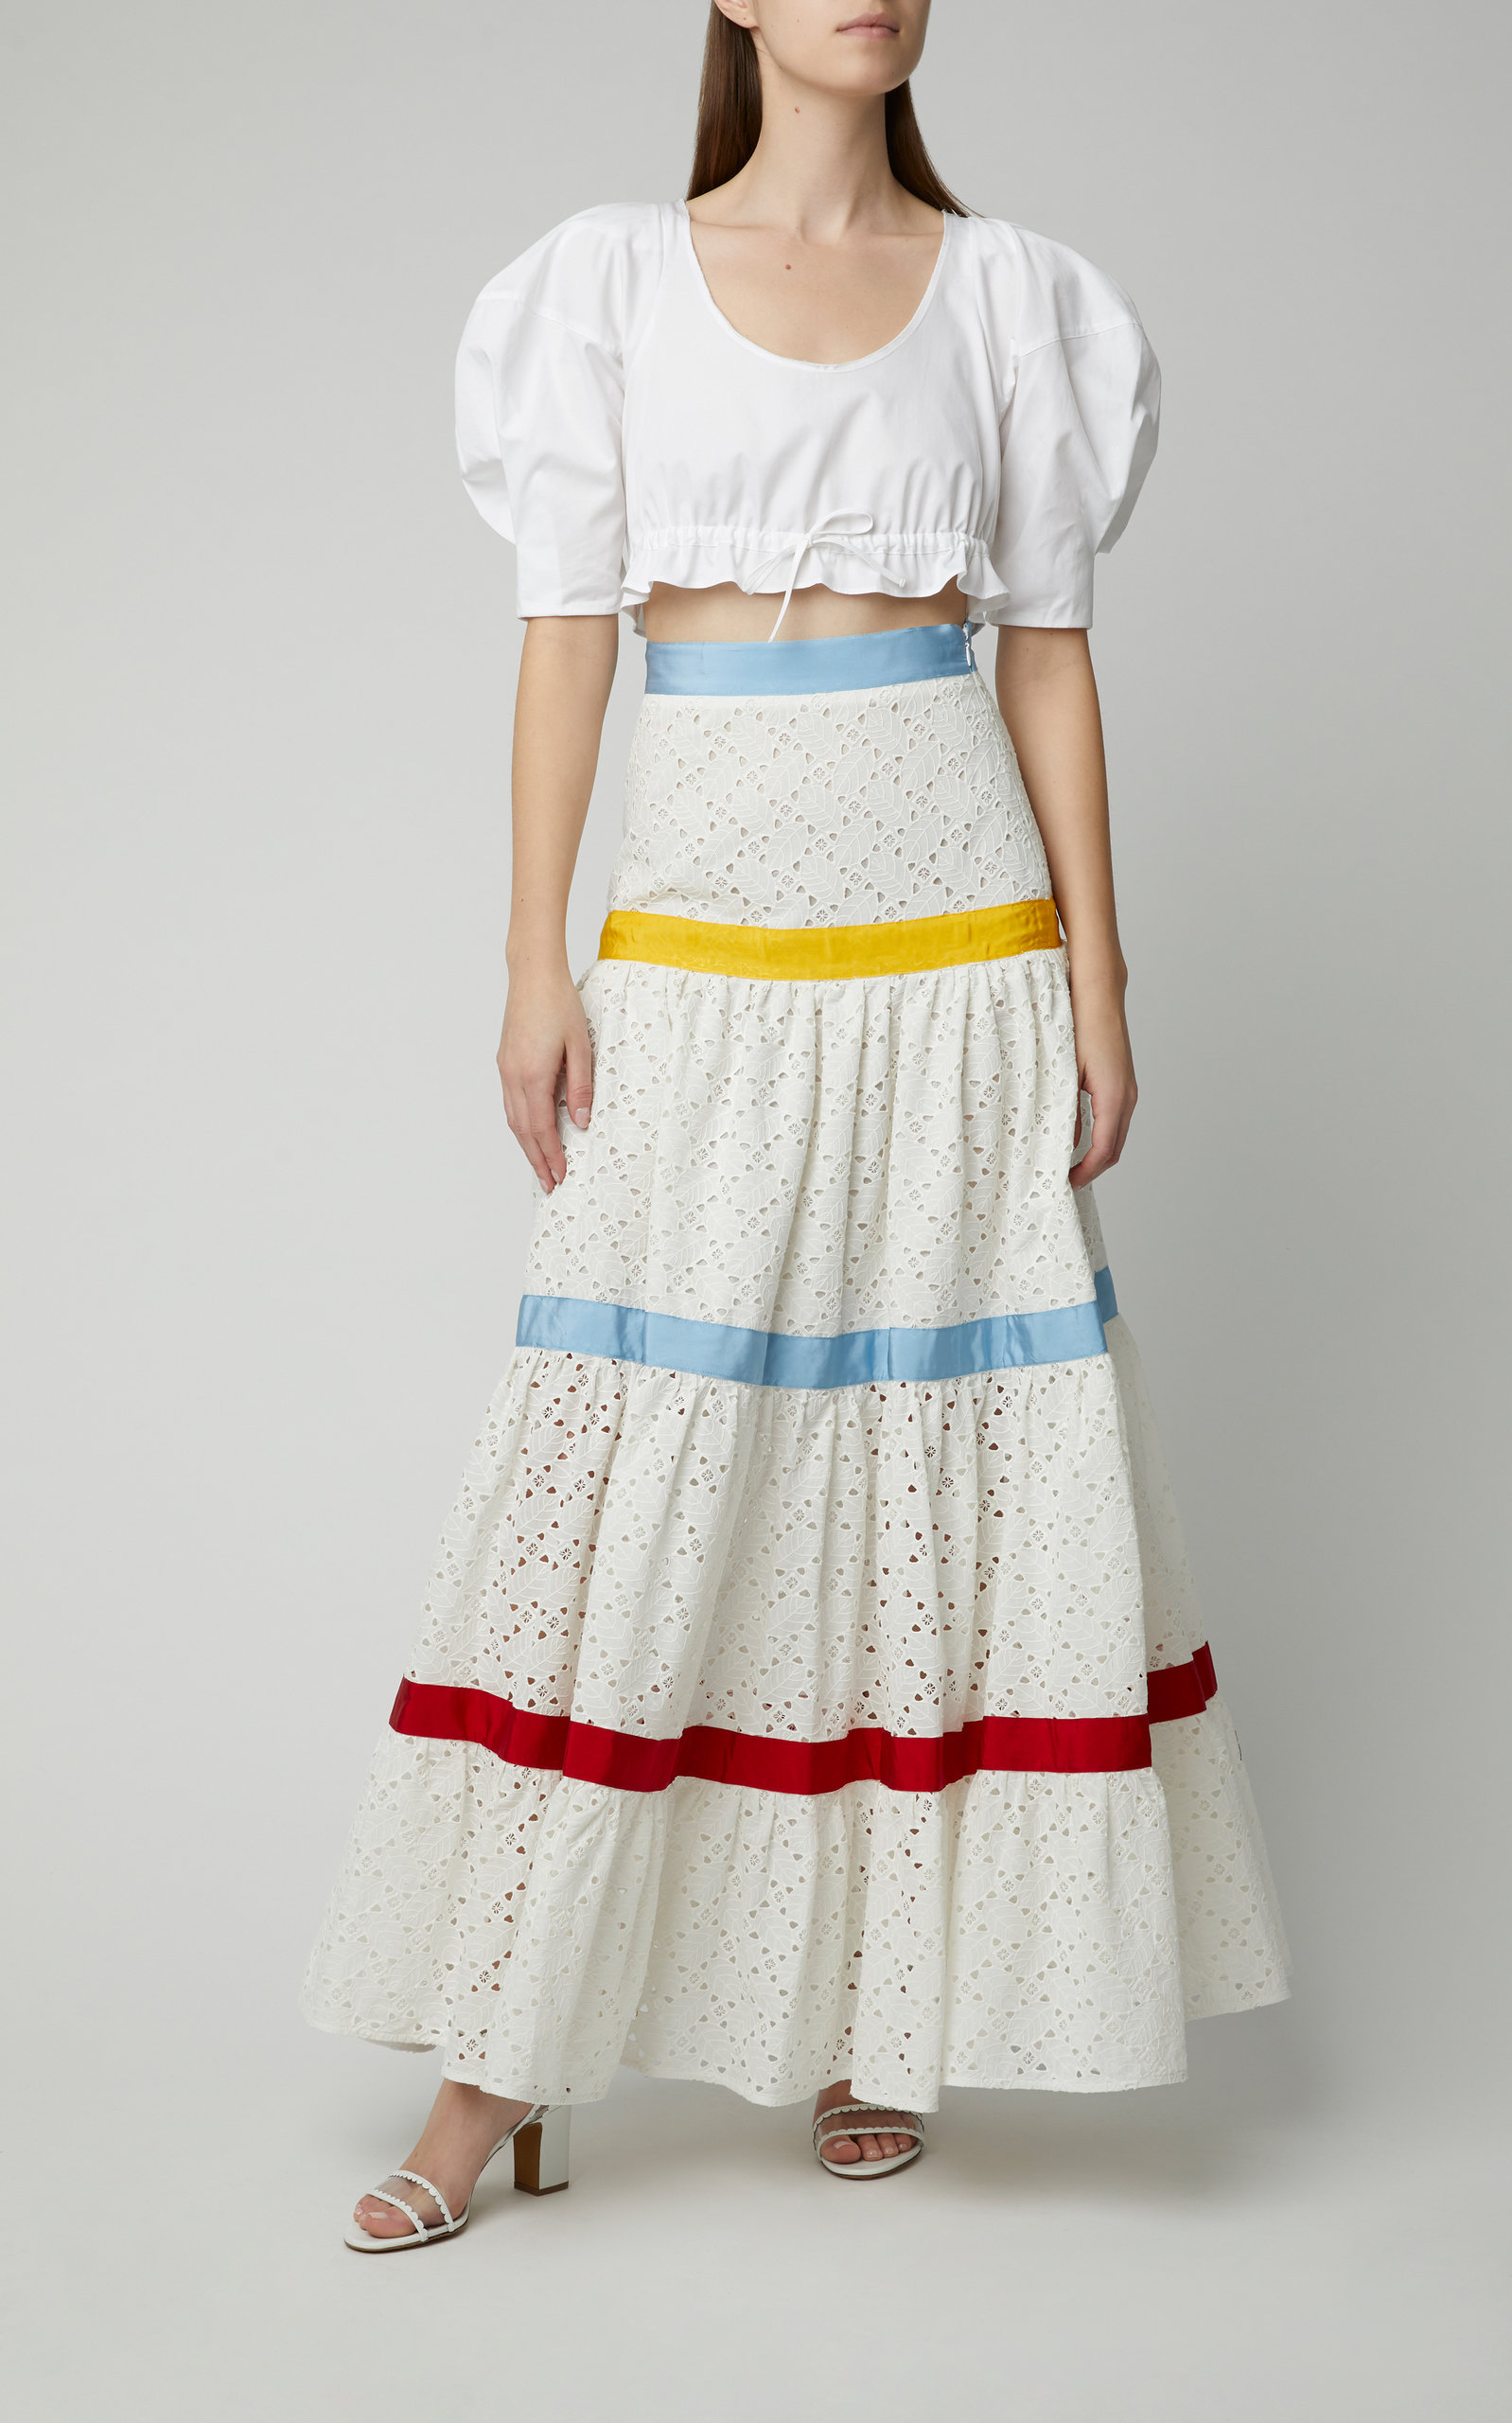 9b84fe21b9 Sangallo Tiered Skirt by STELLA JEAN - white skirt with blue, yellow, and  red stripe